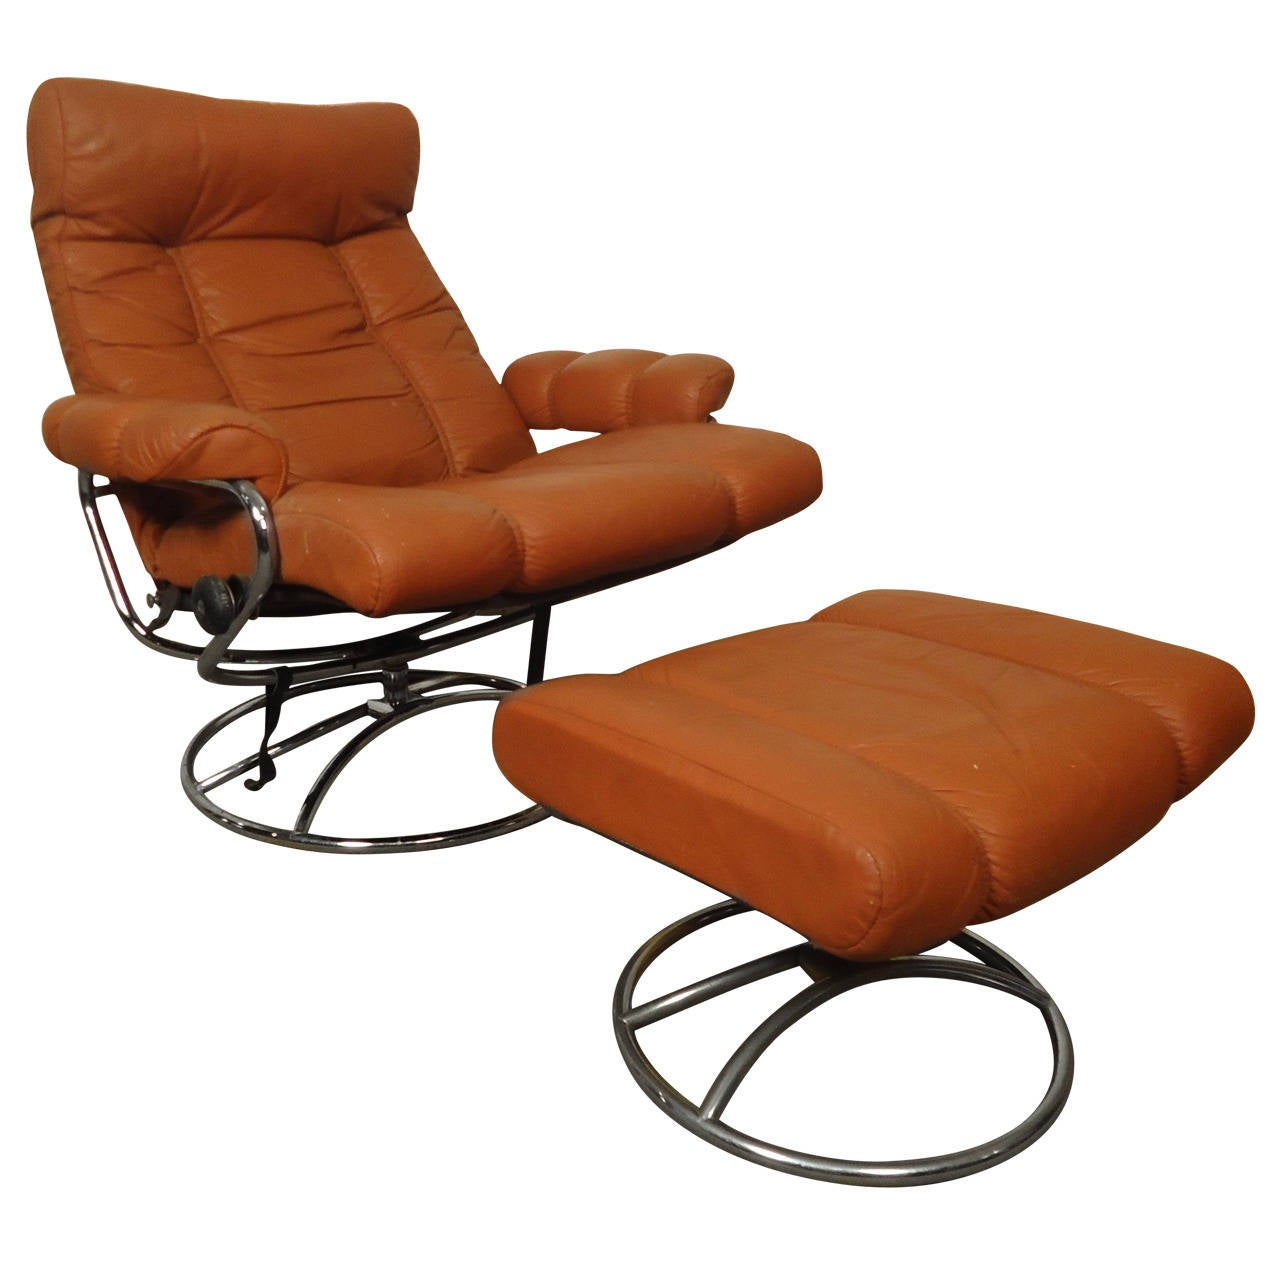 mid century reclining chair and ottoman by ekornes. Black Bedroom Furniture Sets. Home Design Ideas